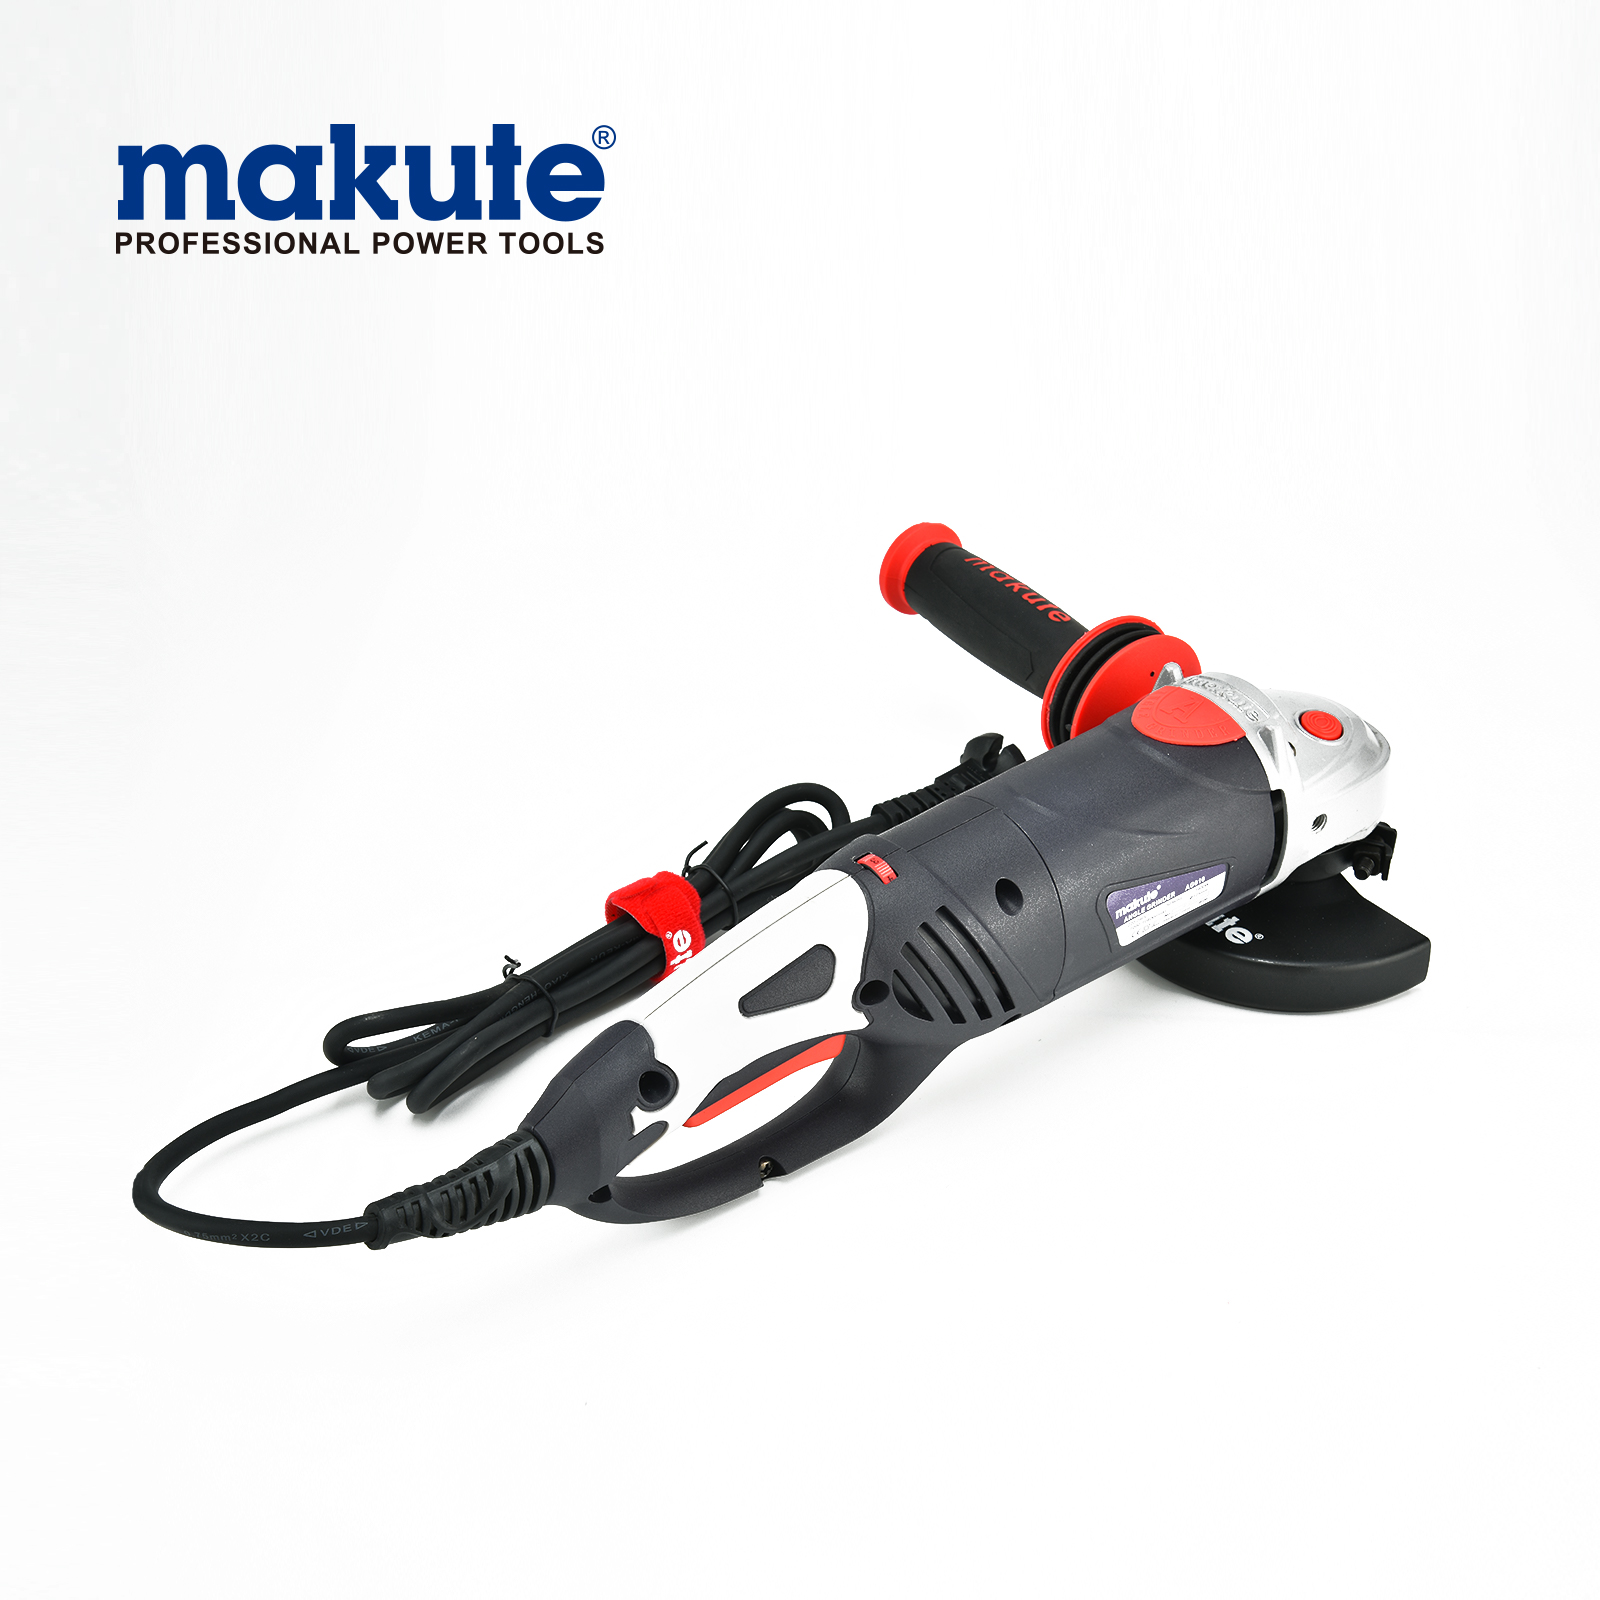 220 volt 150mm angle grinder with speed control